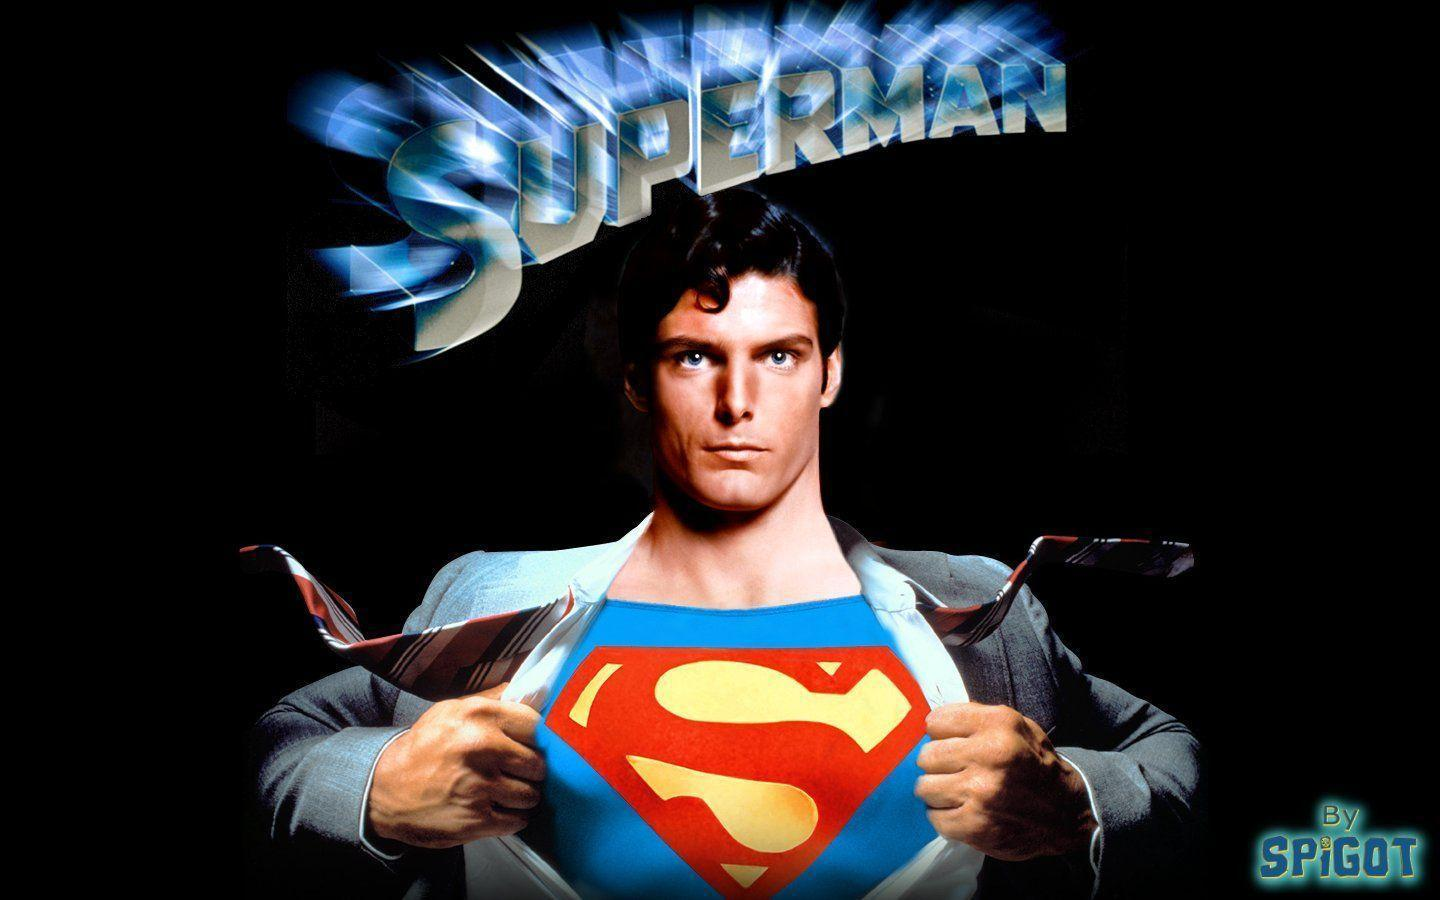 Christopher Reeve | George Spigot's Blog